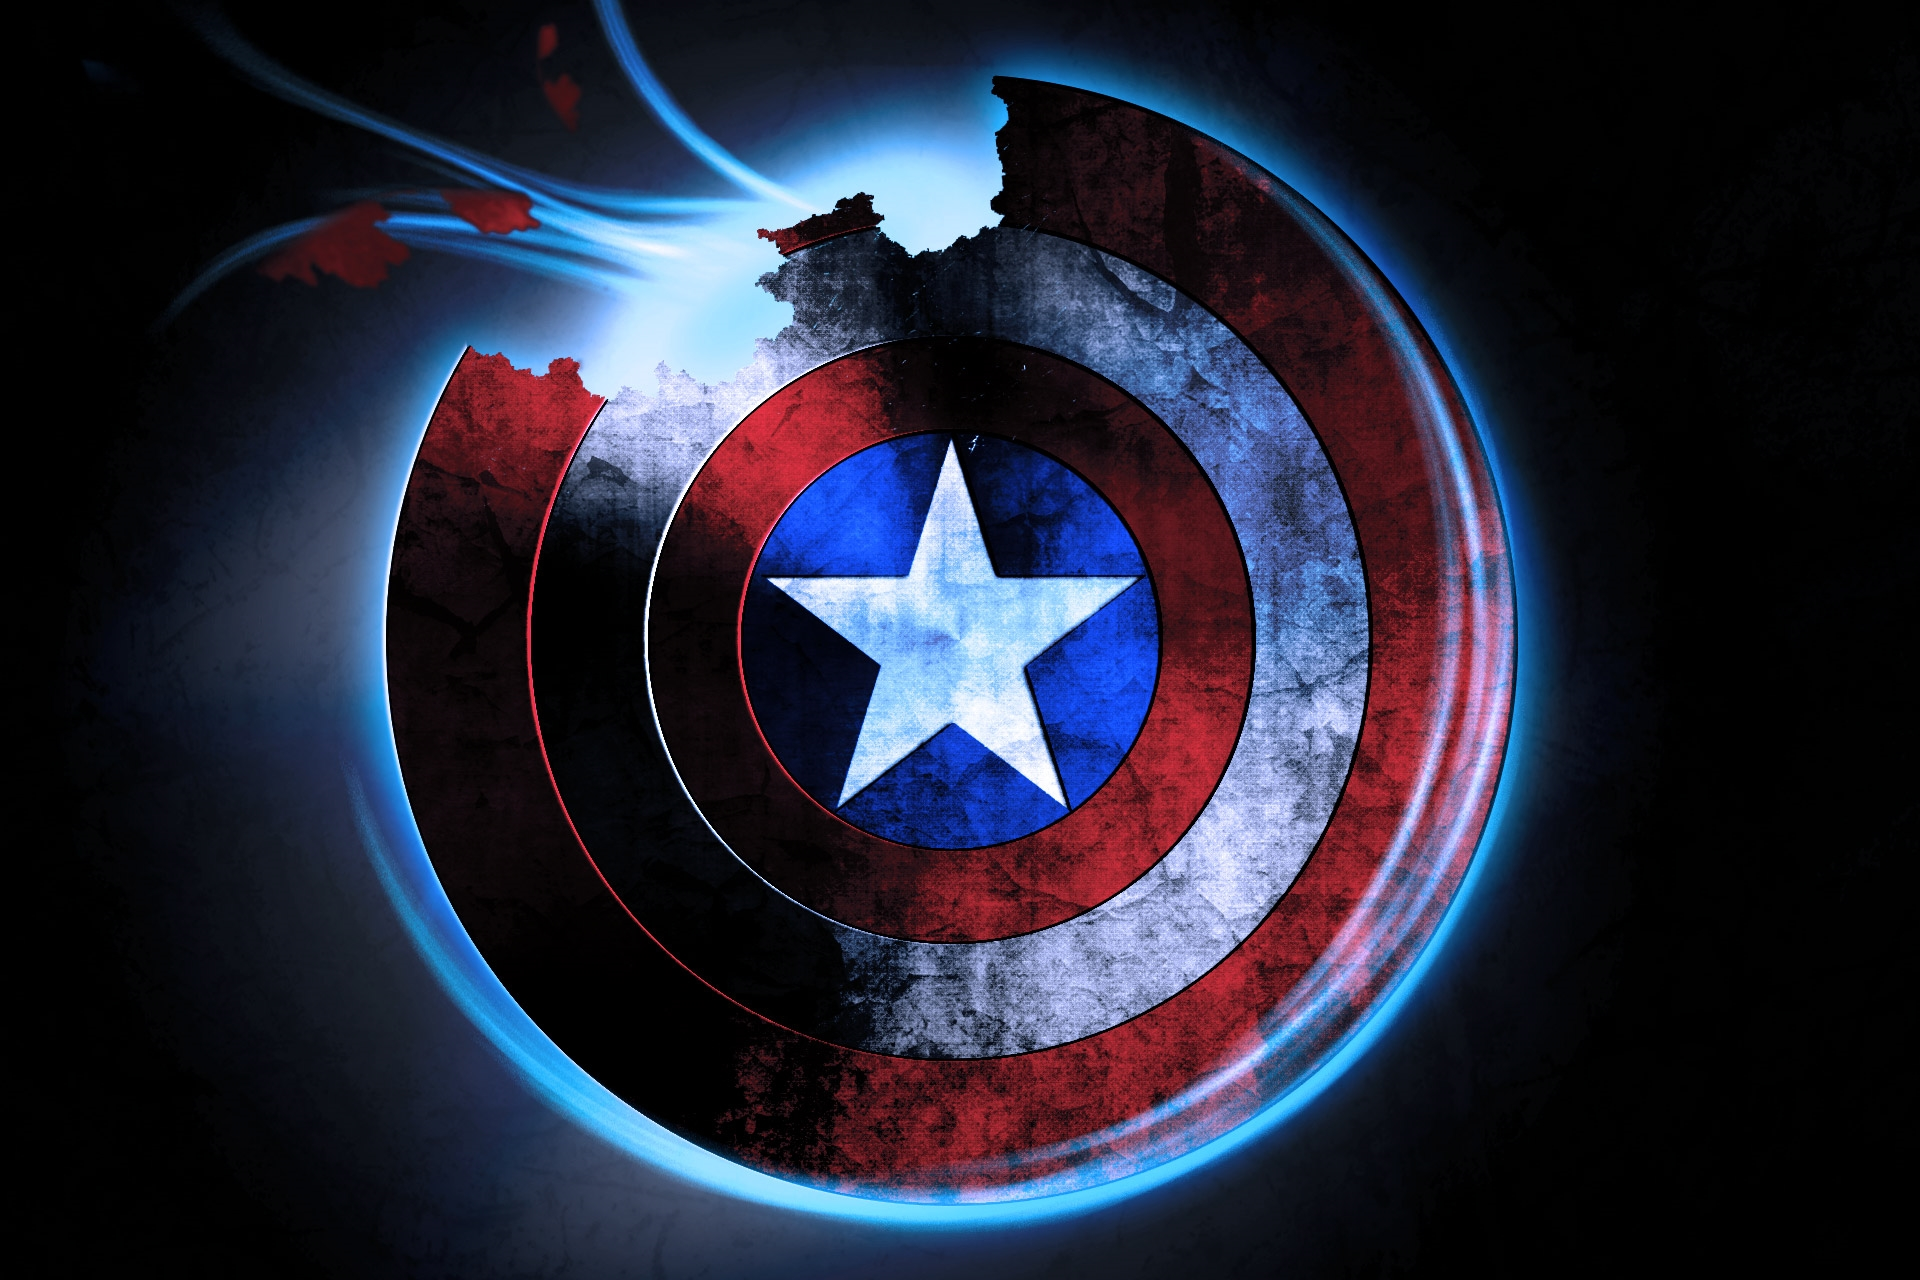 wallpaper captain america wallpapers download resolution 1920x1280